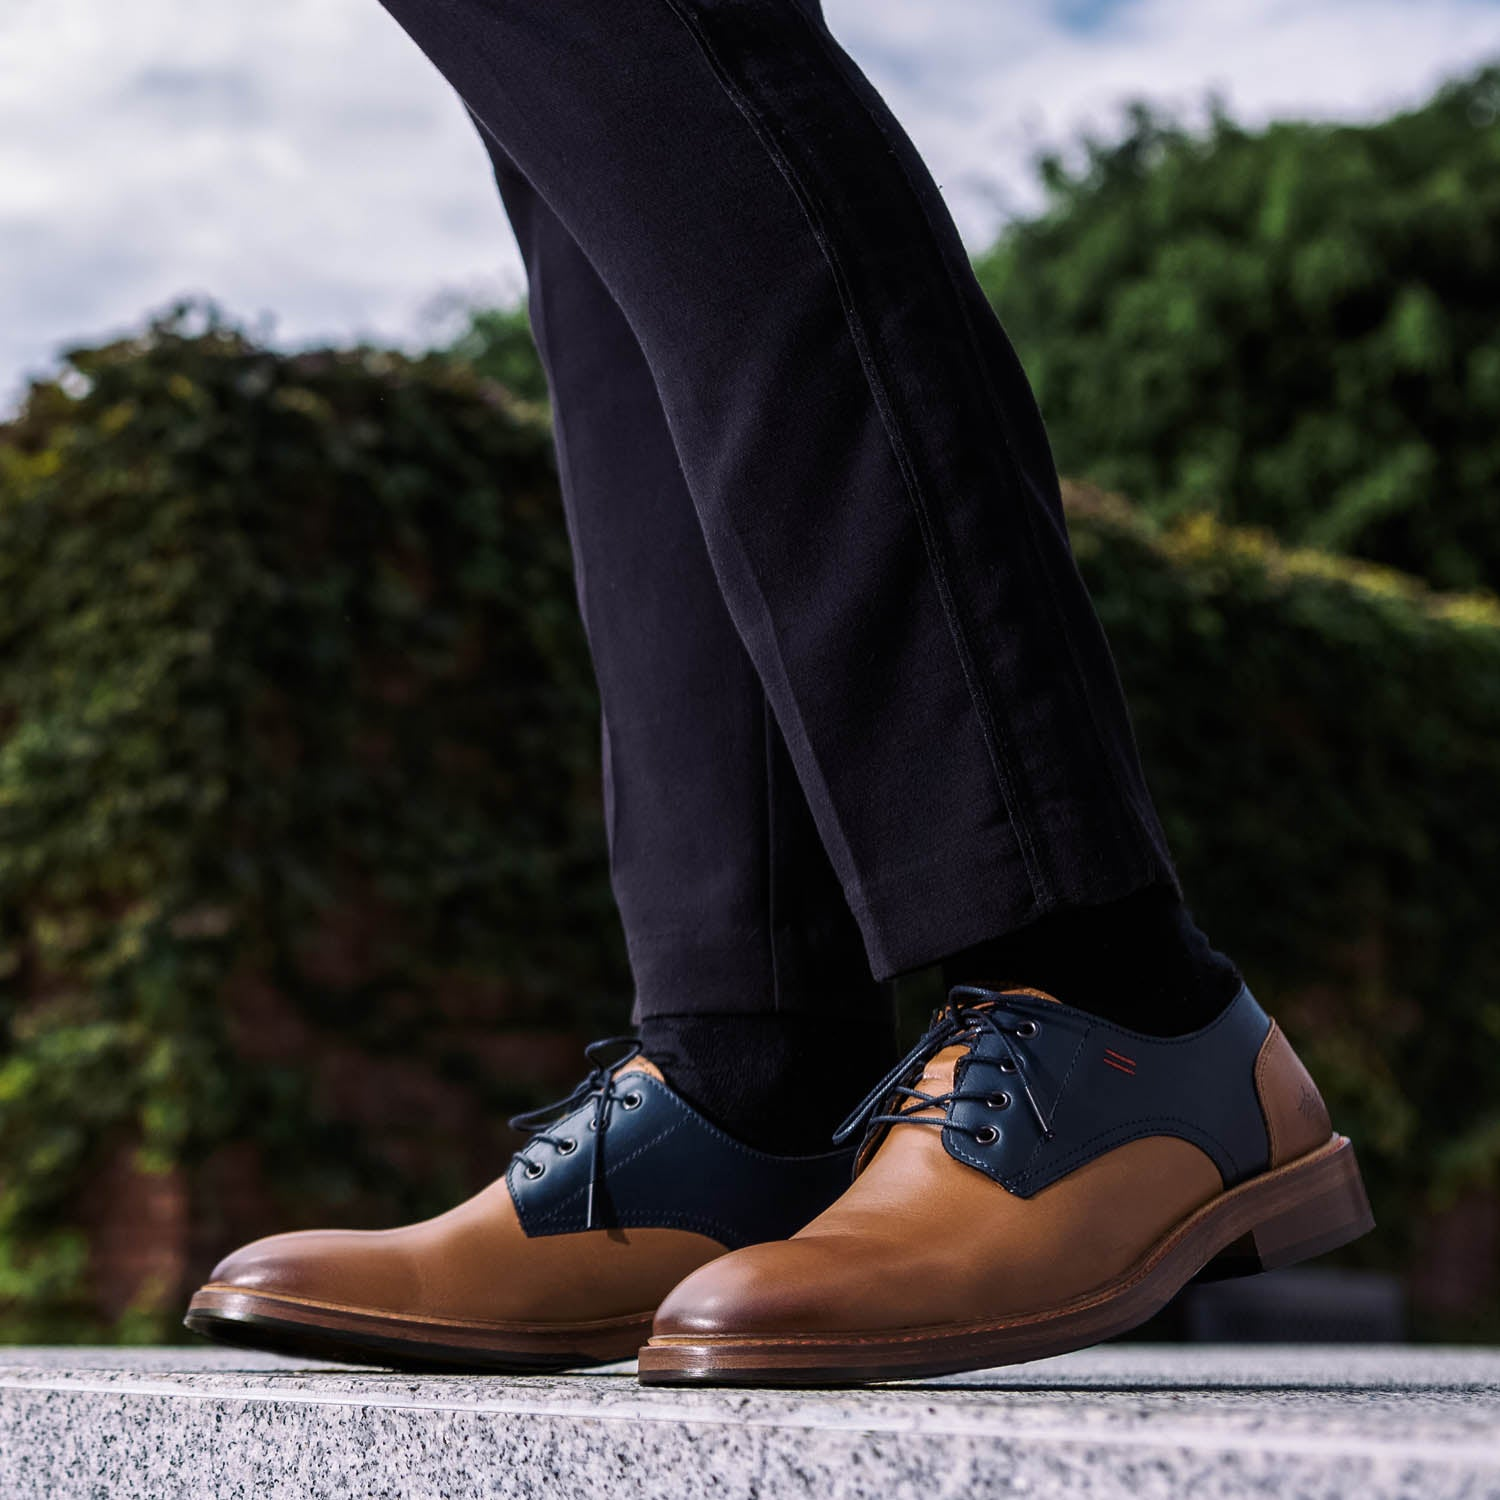 NiK Kacy Genderfree Luxury Footwear, handcrafted, genuine leather Brown and Blue Classic Derby's for all occasions